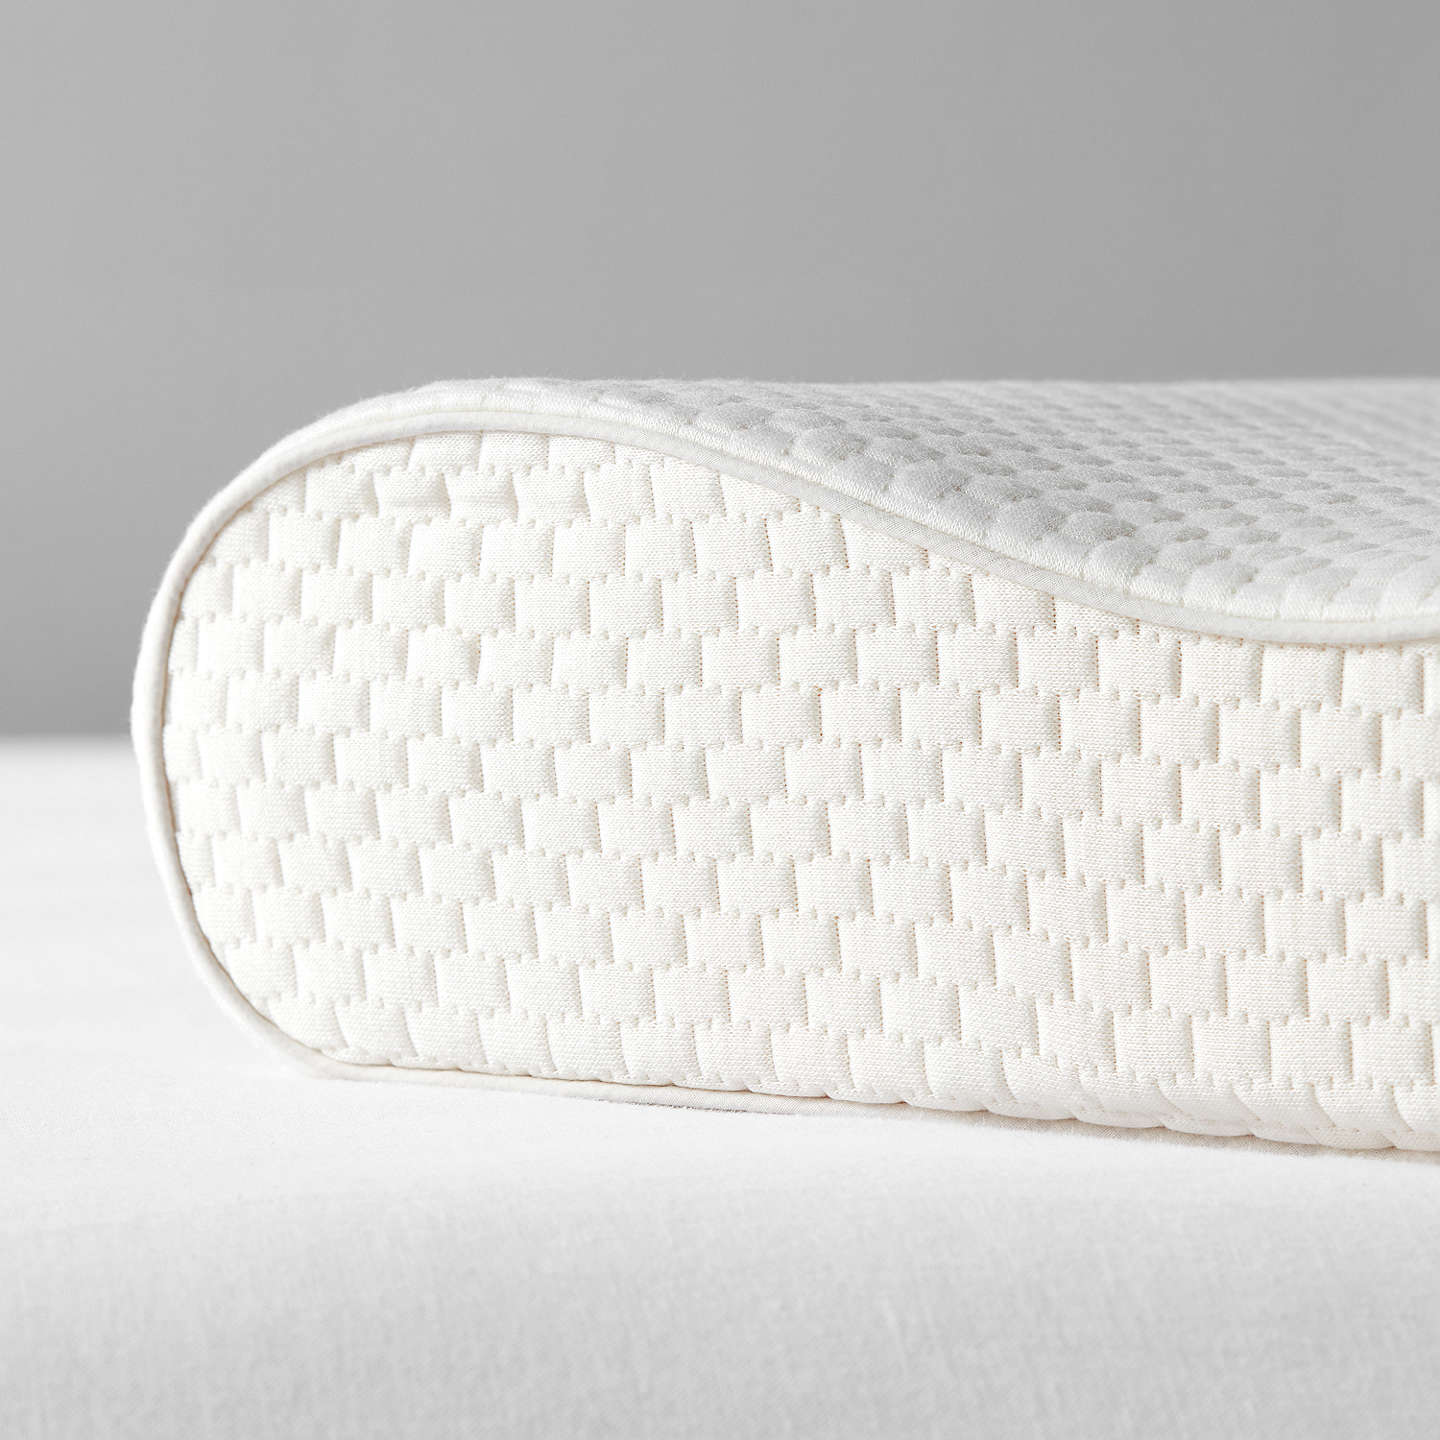 BuyJohn Lewis Specialist Synthetic 2-Way Memory Foam Support Pillow, Medium/Firm Online at johnlewis.com